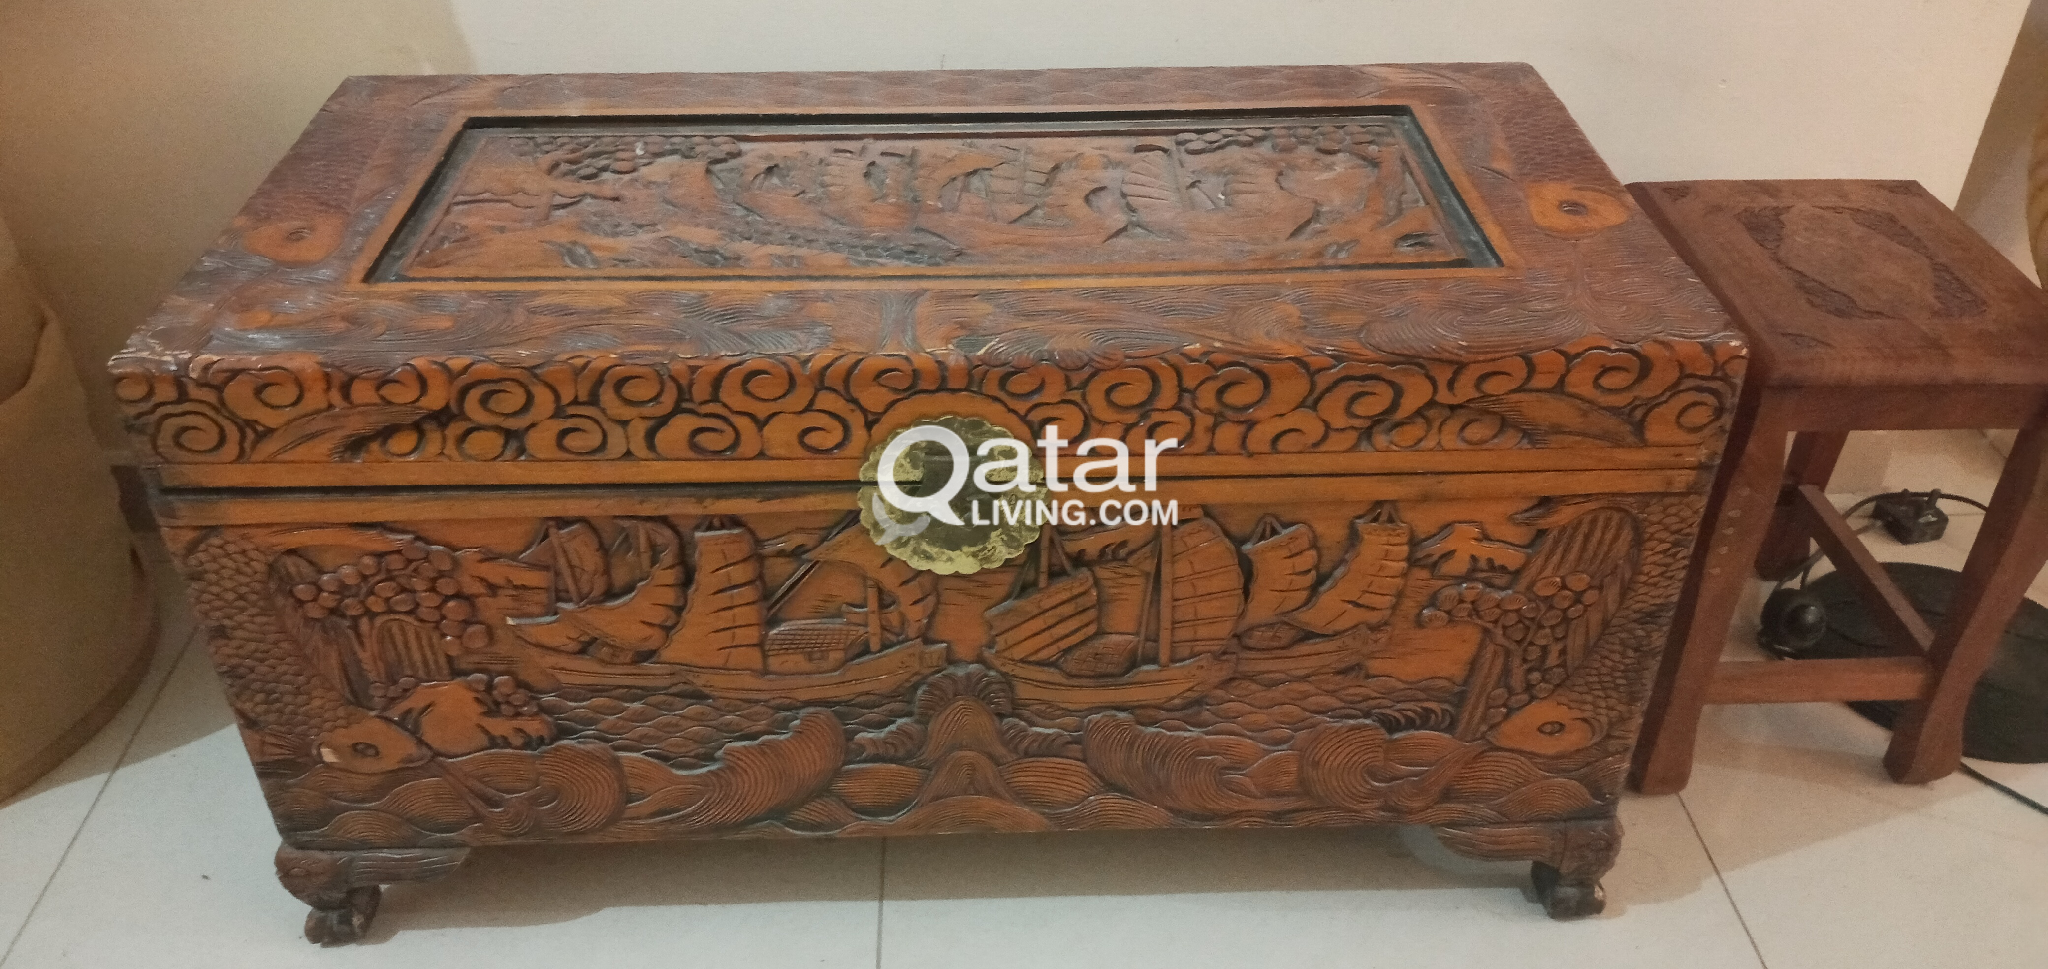 ANTIQUE WOODEN CARVING BOX